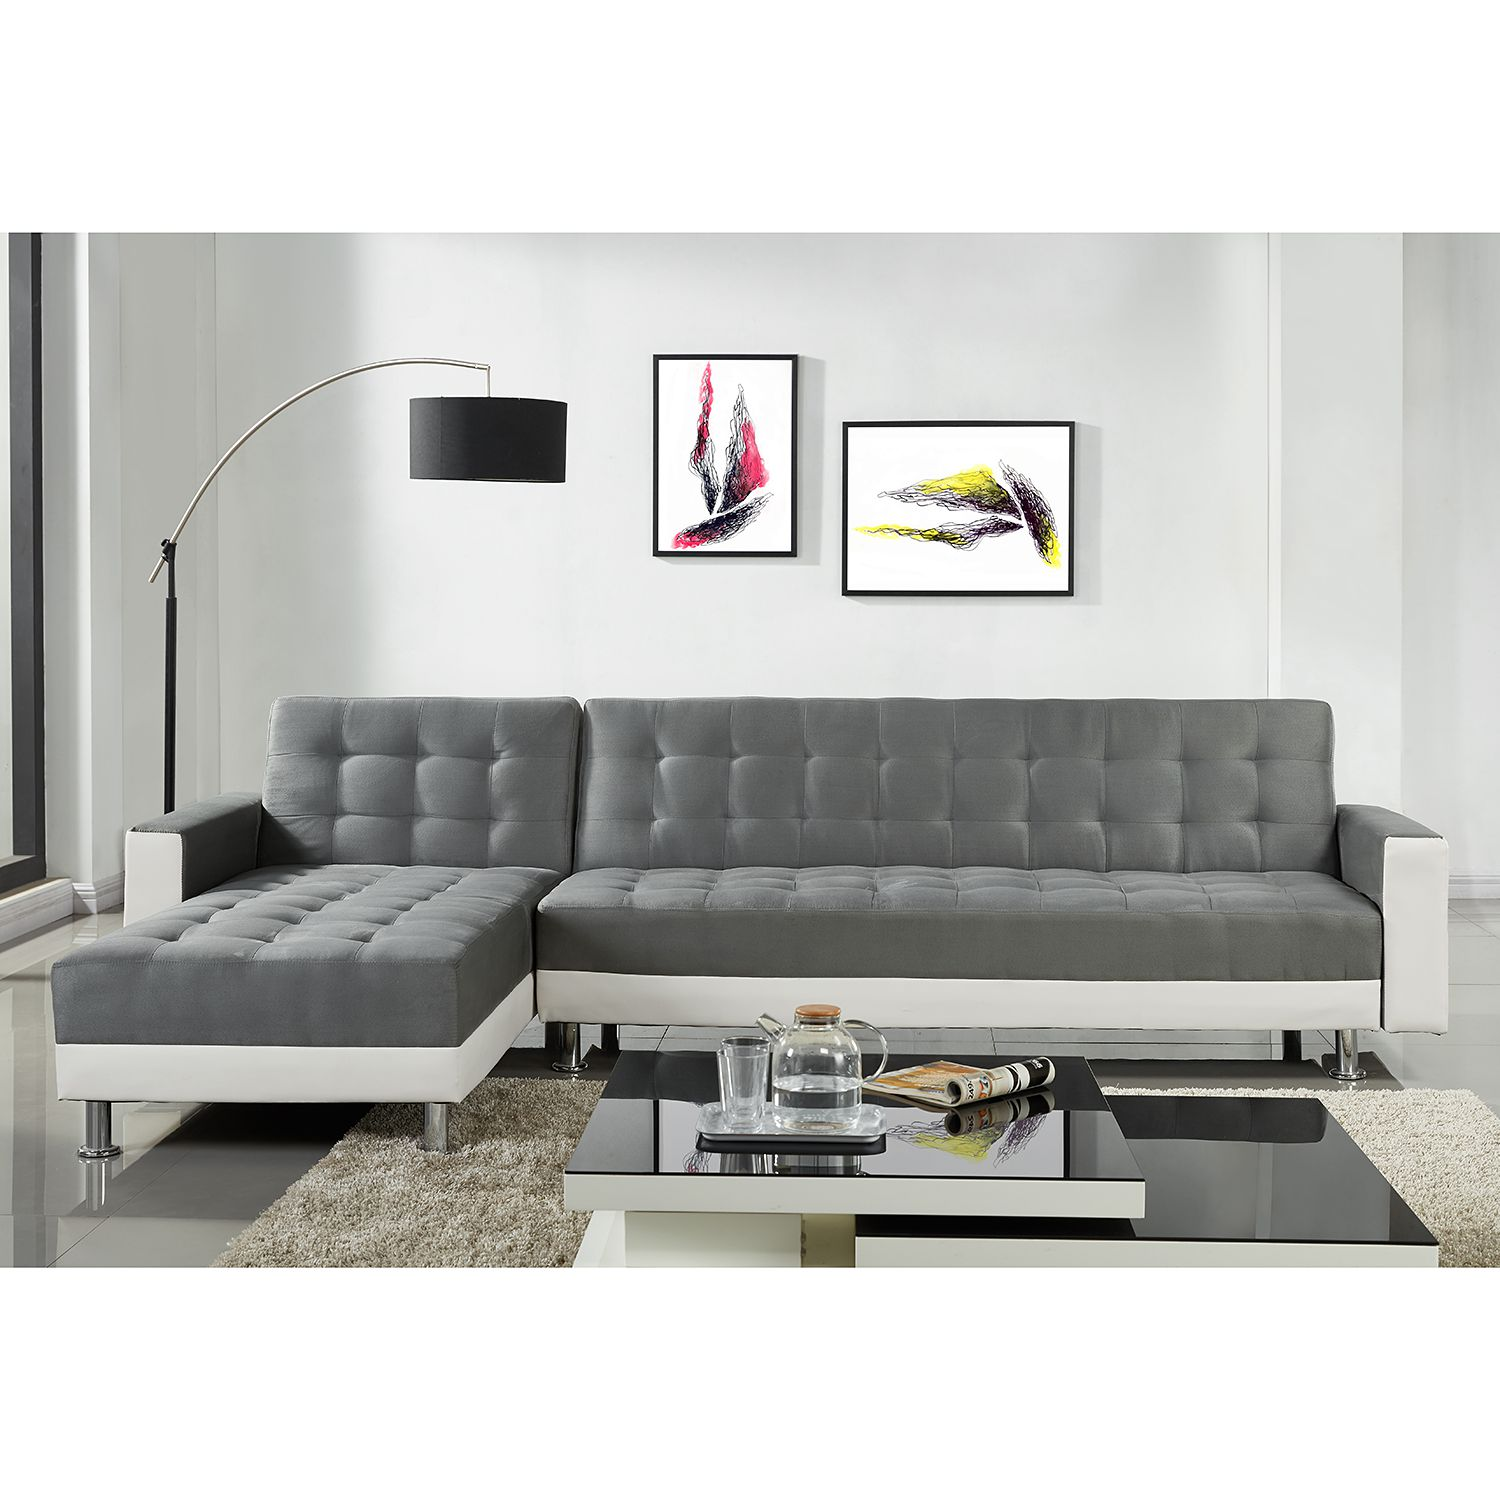 41 sparen ecksofa corby mit schlaffunktion nur 349. Black Bedroom Furniture Sets. Home Design Ideas